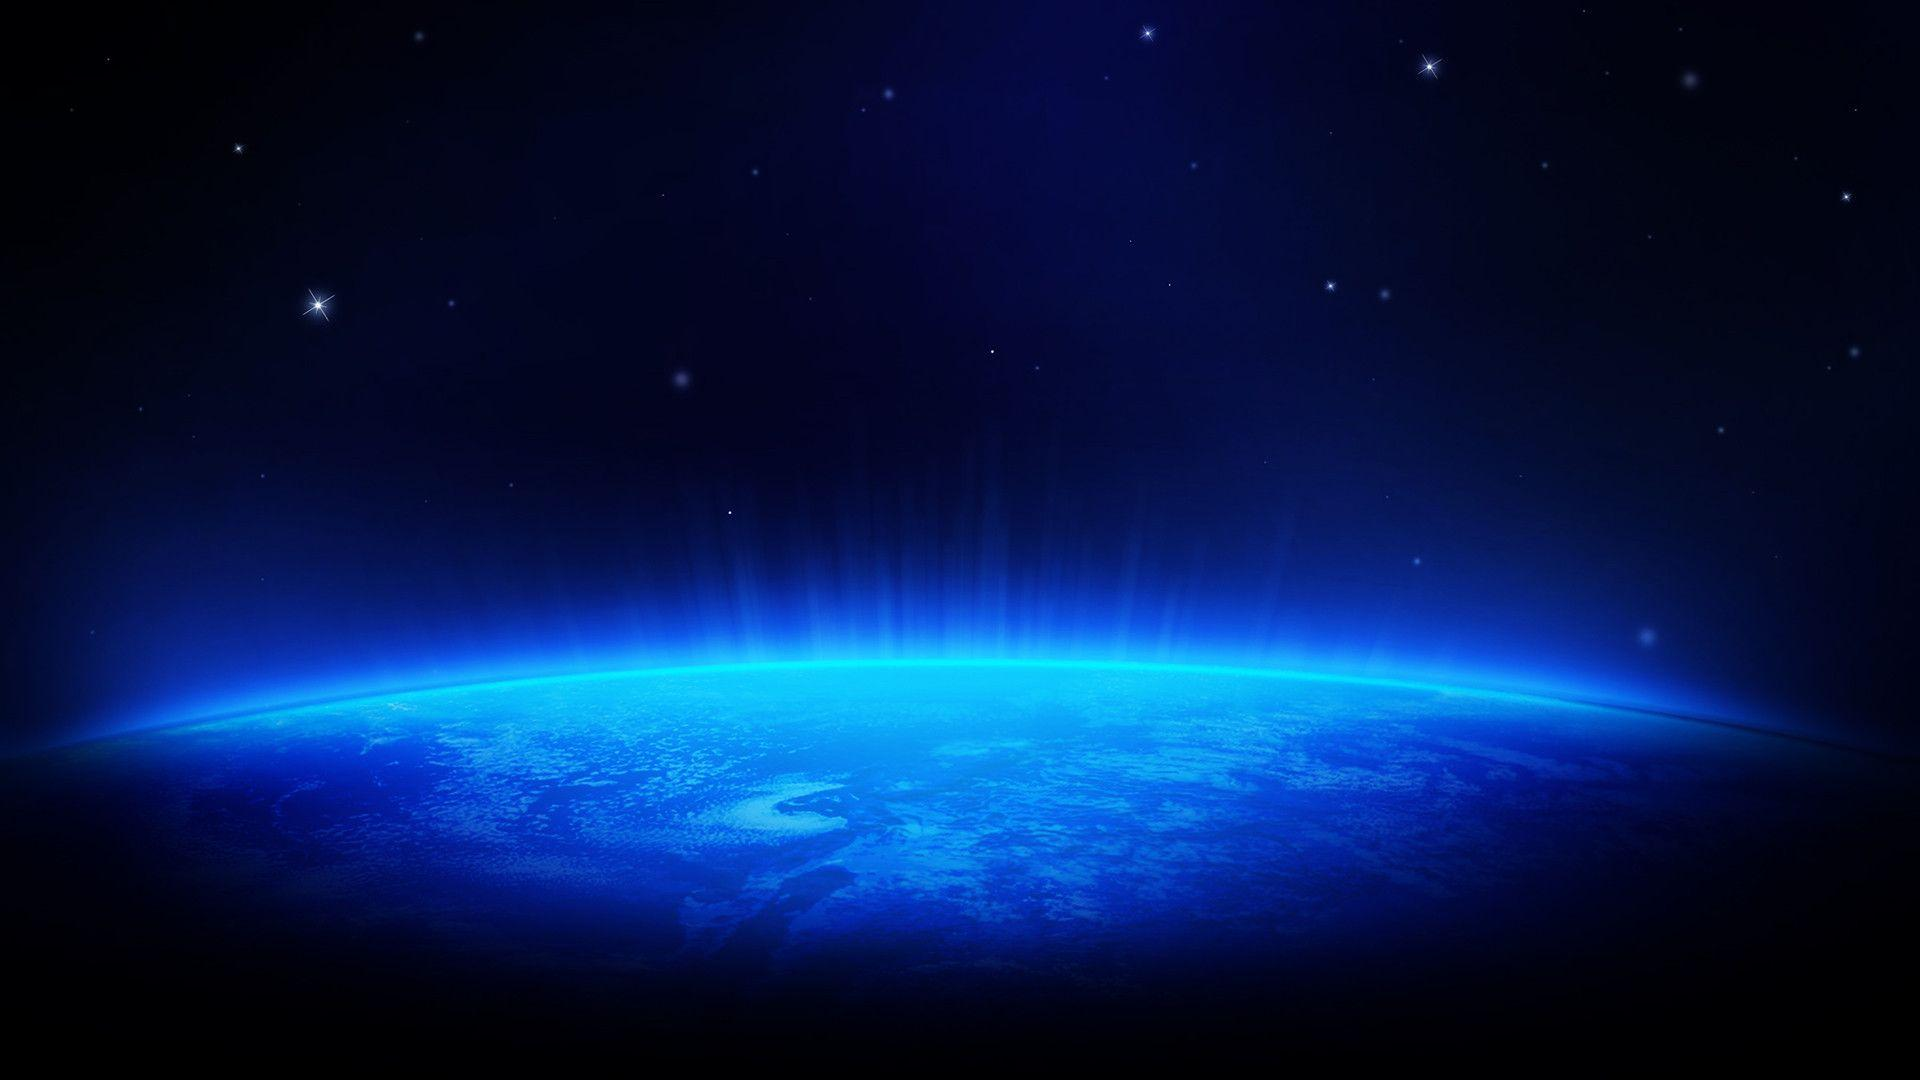 Blue Space HD Wallpapers @ 1080p HD Wallpapers